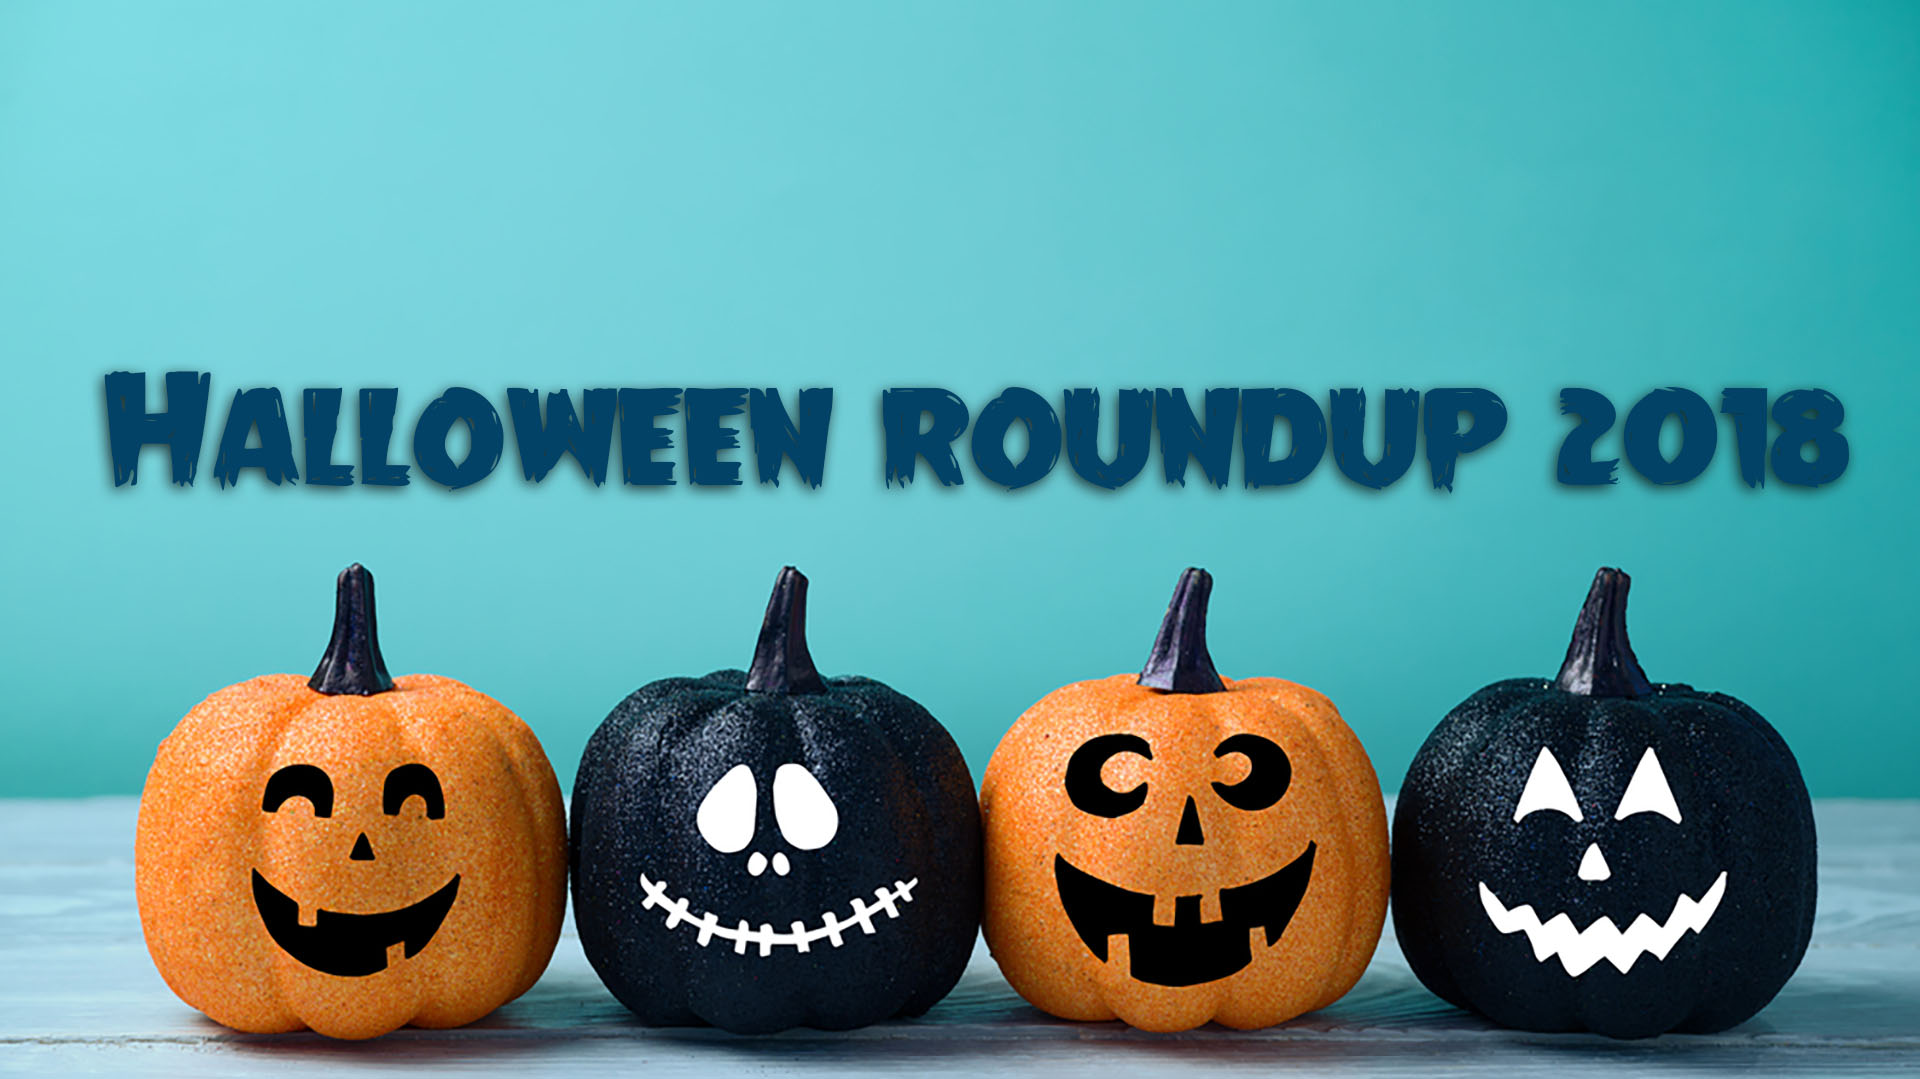 Halloween Roundup 2018: Your guide to tricks, treats and more seasonal fun